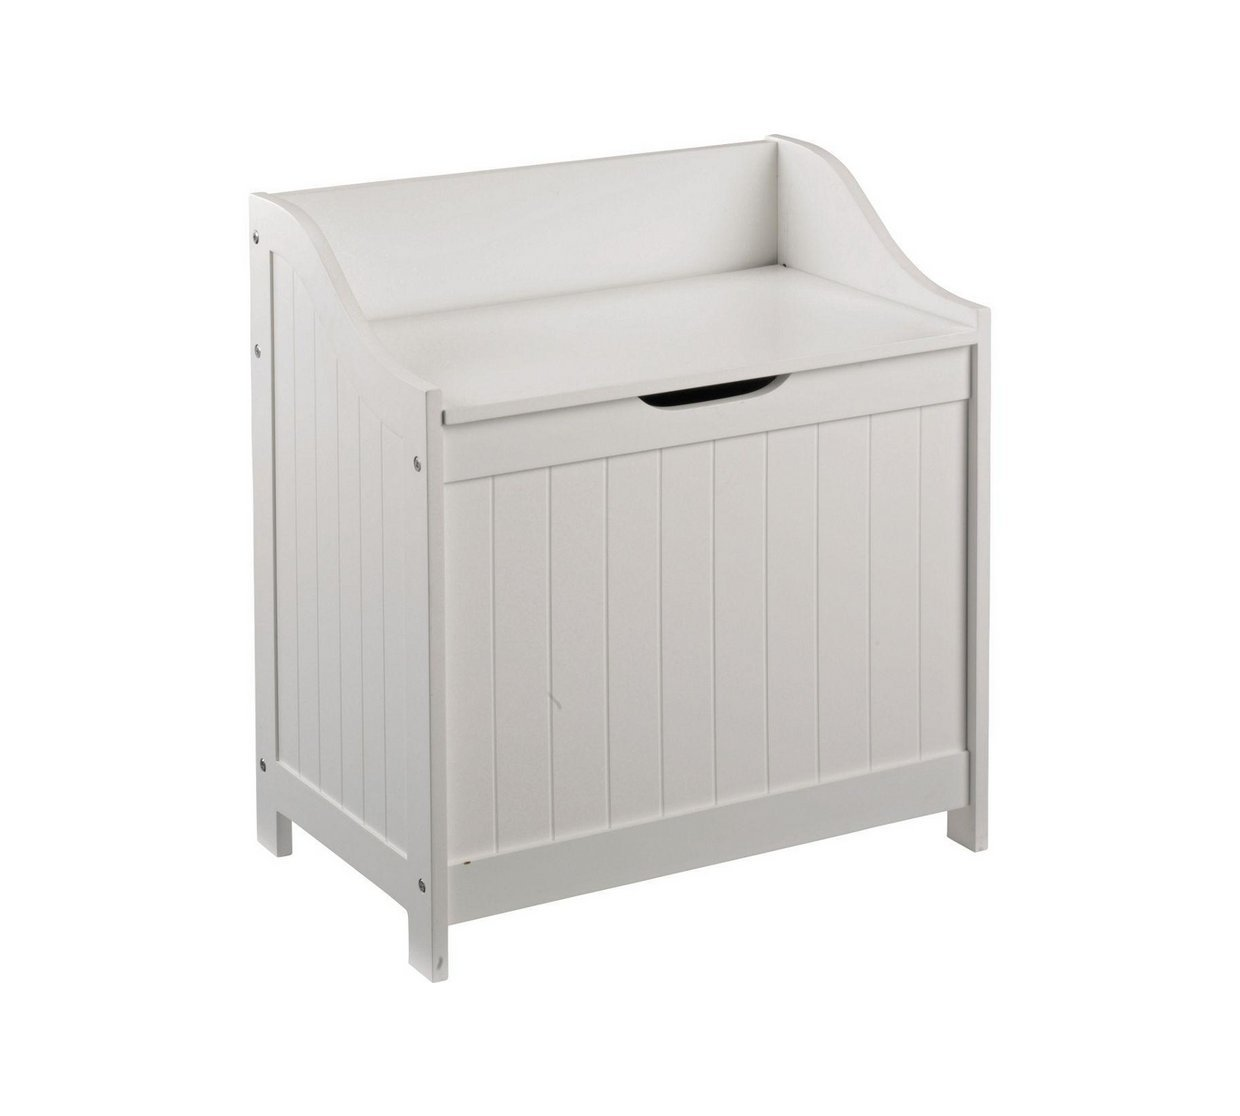 Sale On Argos Home 60 Litre Monks Bench Style Laundry Box